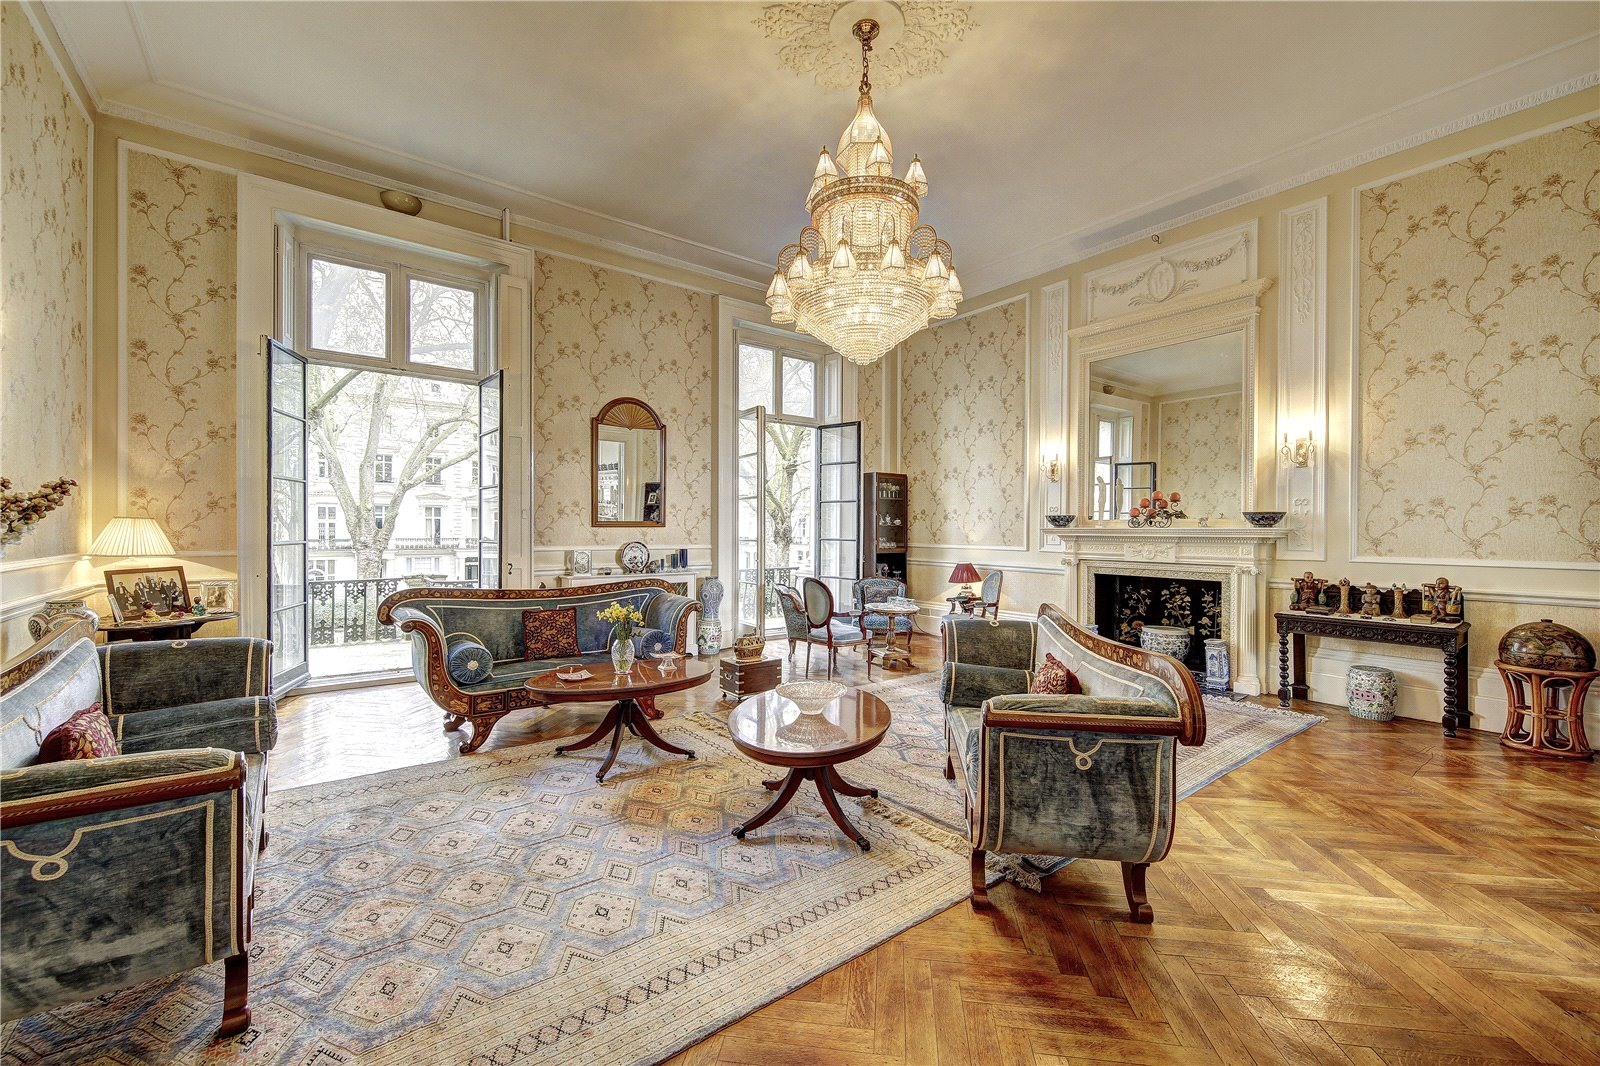 Other for Sale at Westbourne Terrace, Bayswater, London, W2 Westbourne Terrace, Bayswater, London, W2